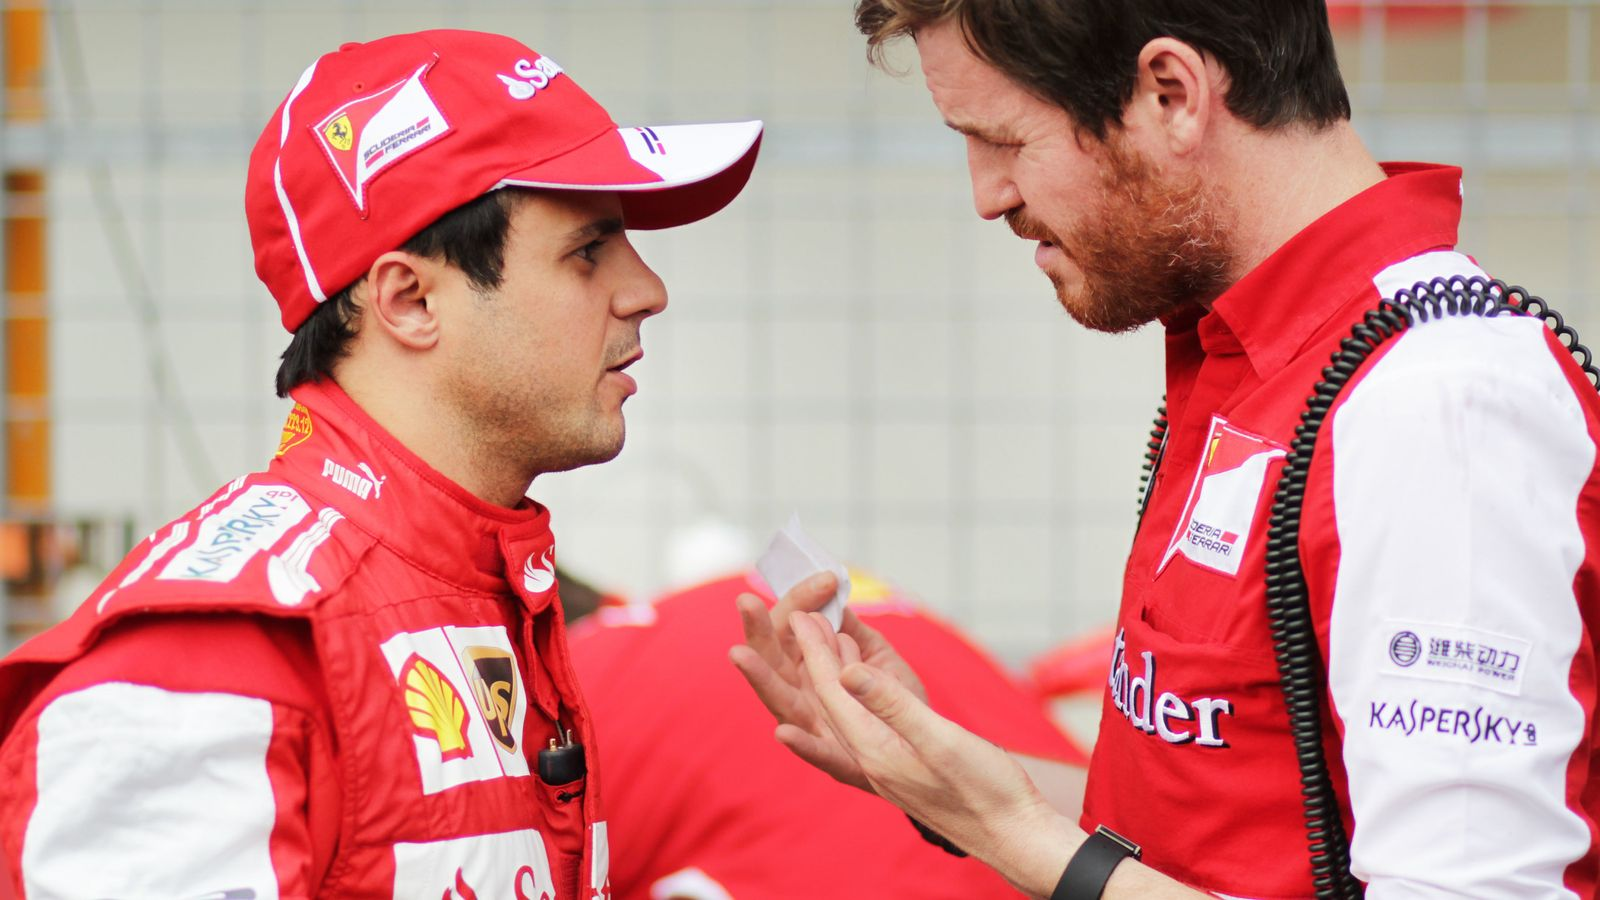 Sky F1 Vodcast : Felipe Massa and Rob Smedley on Ferrari  religion  and why team are  completely different